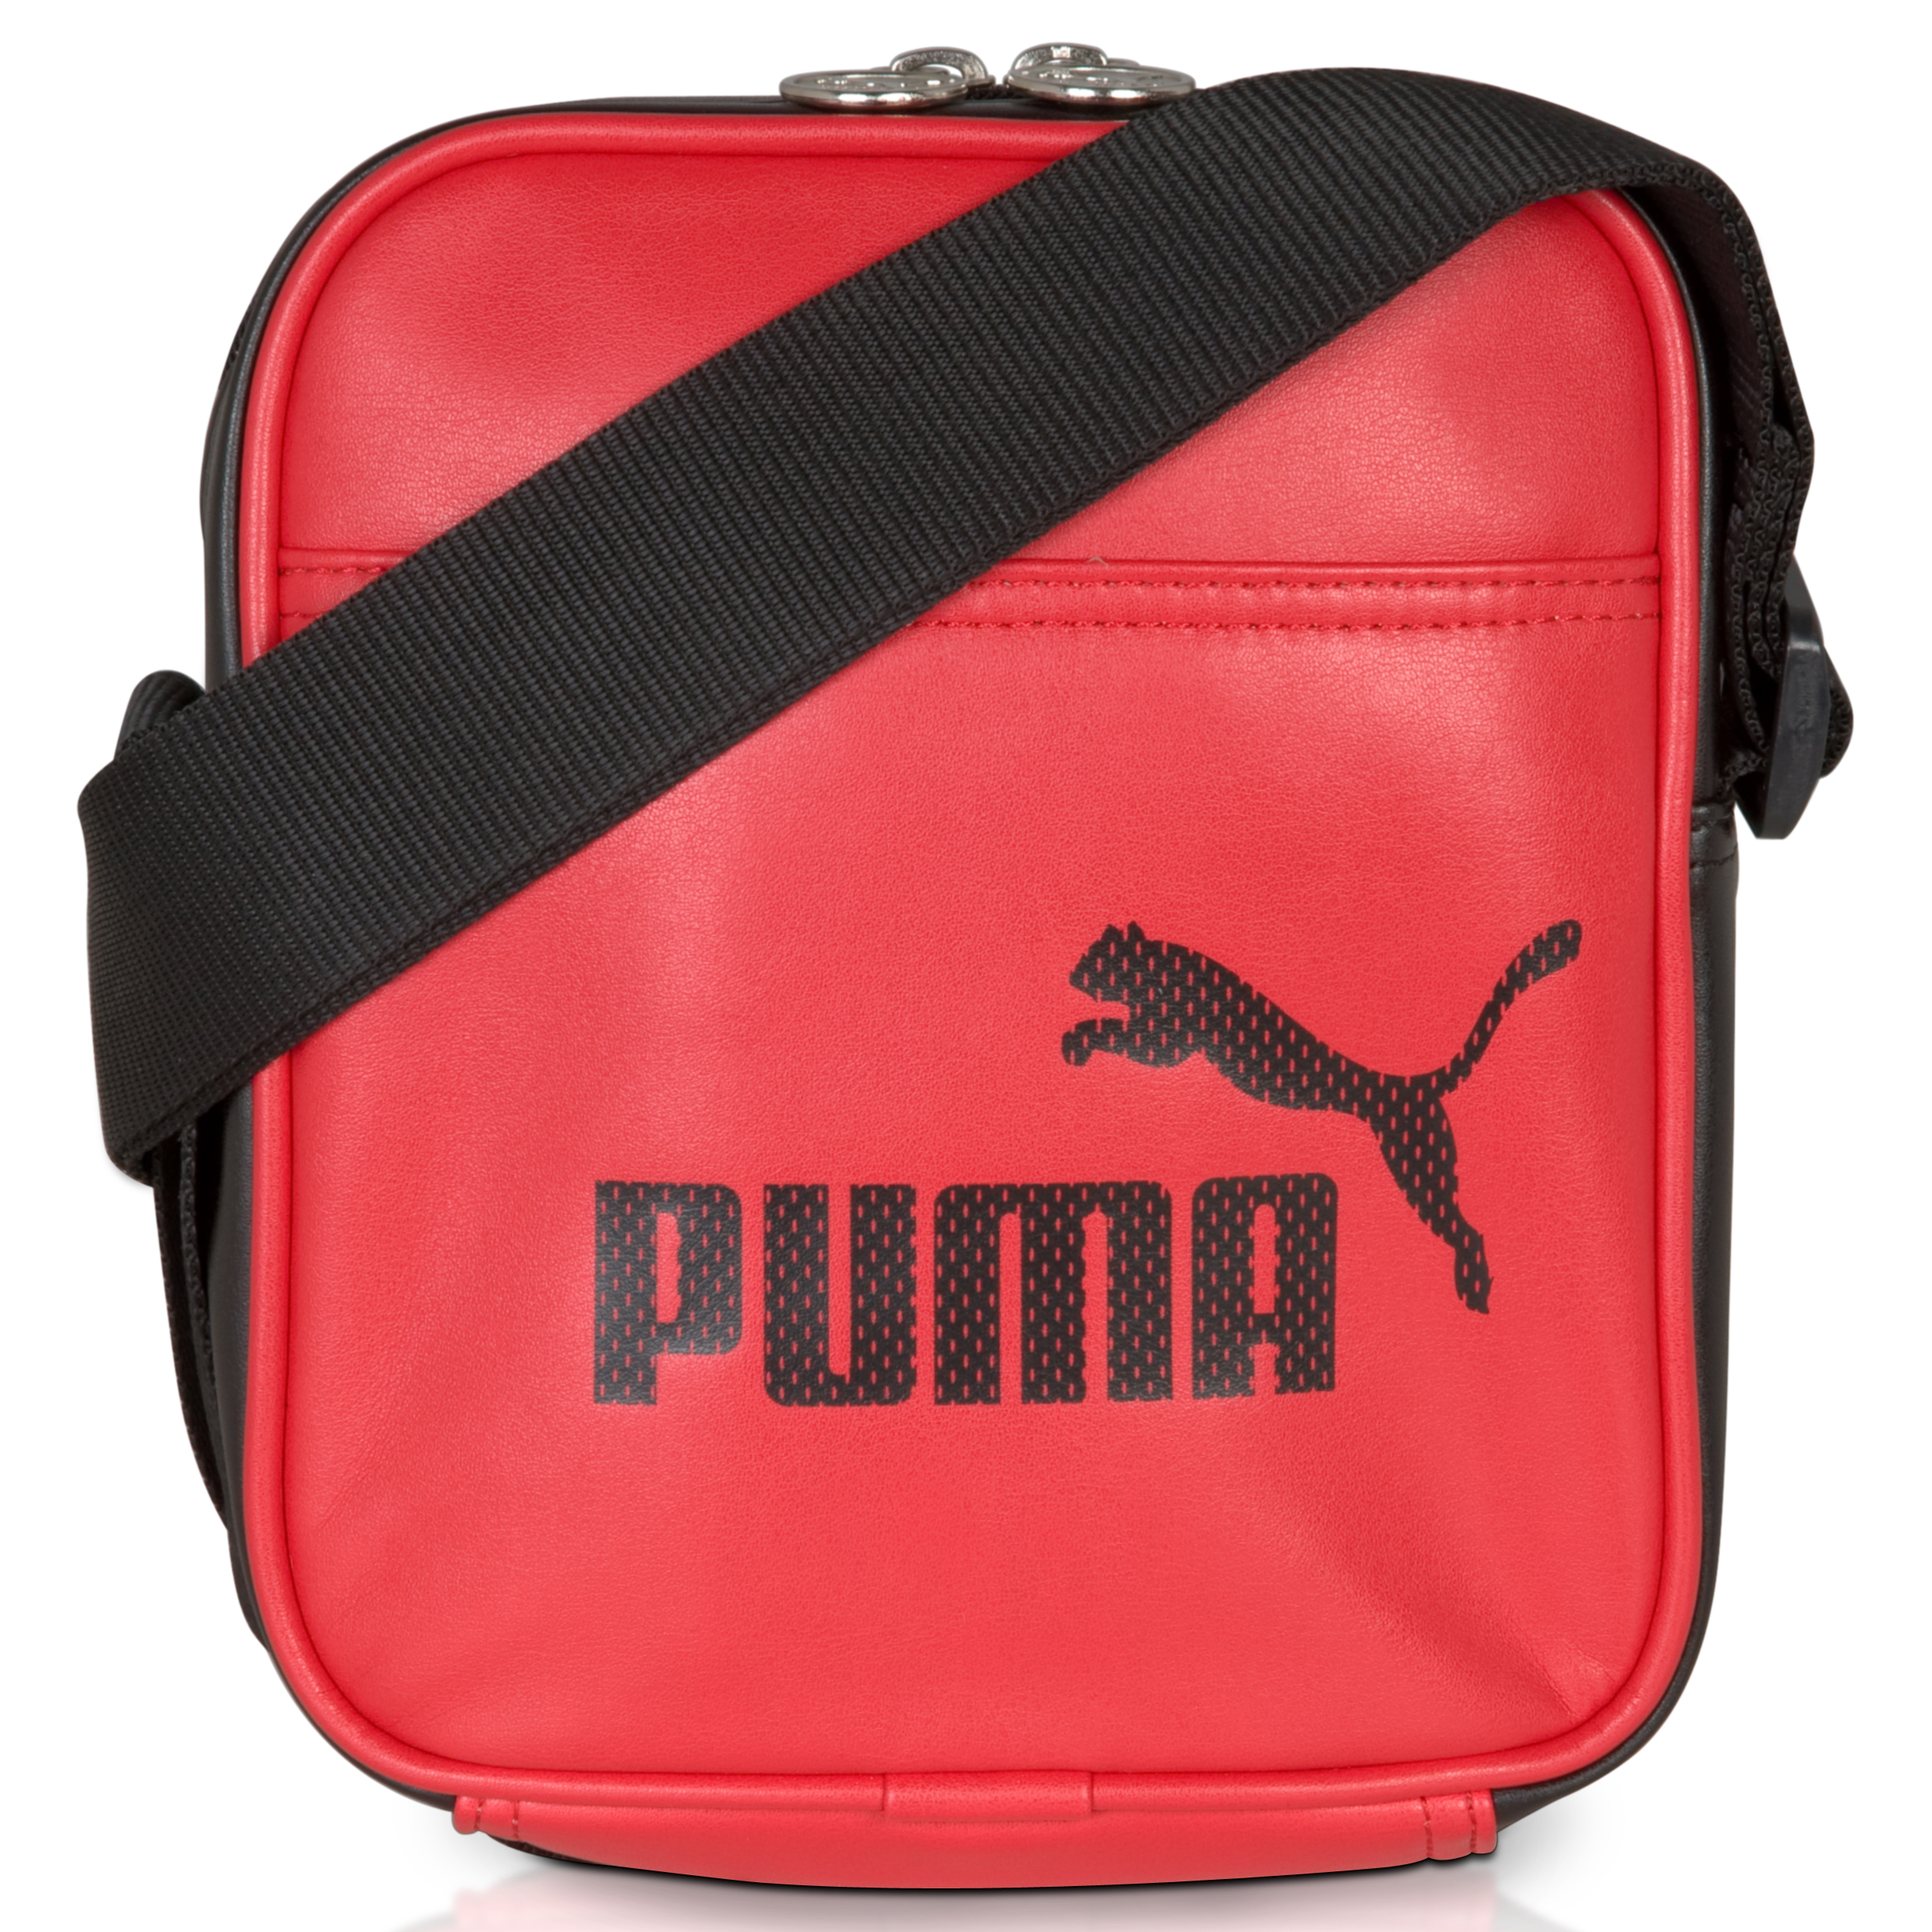 Puma Campus Portable Bag - Ribbon Red/Black